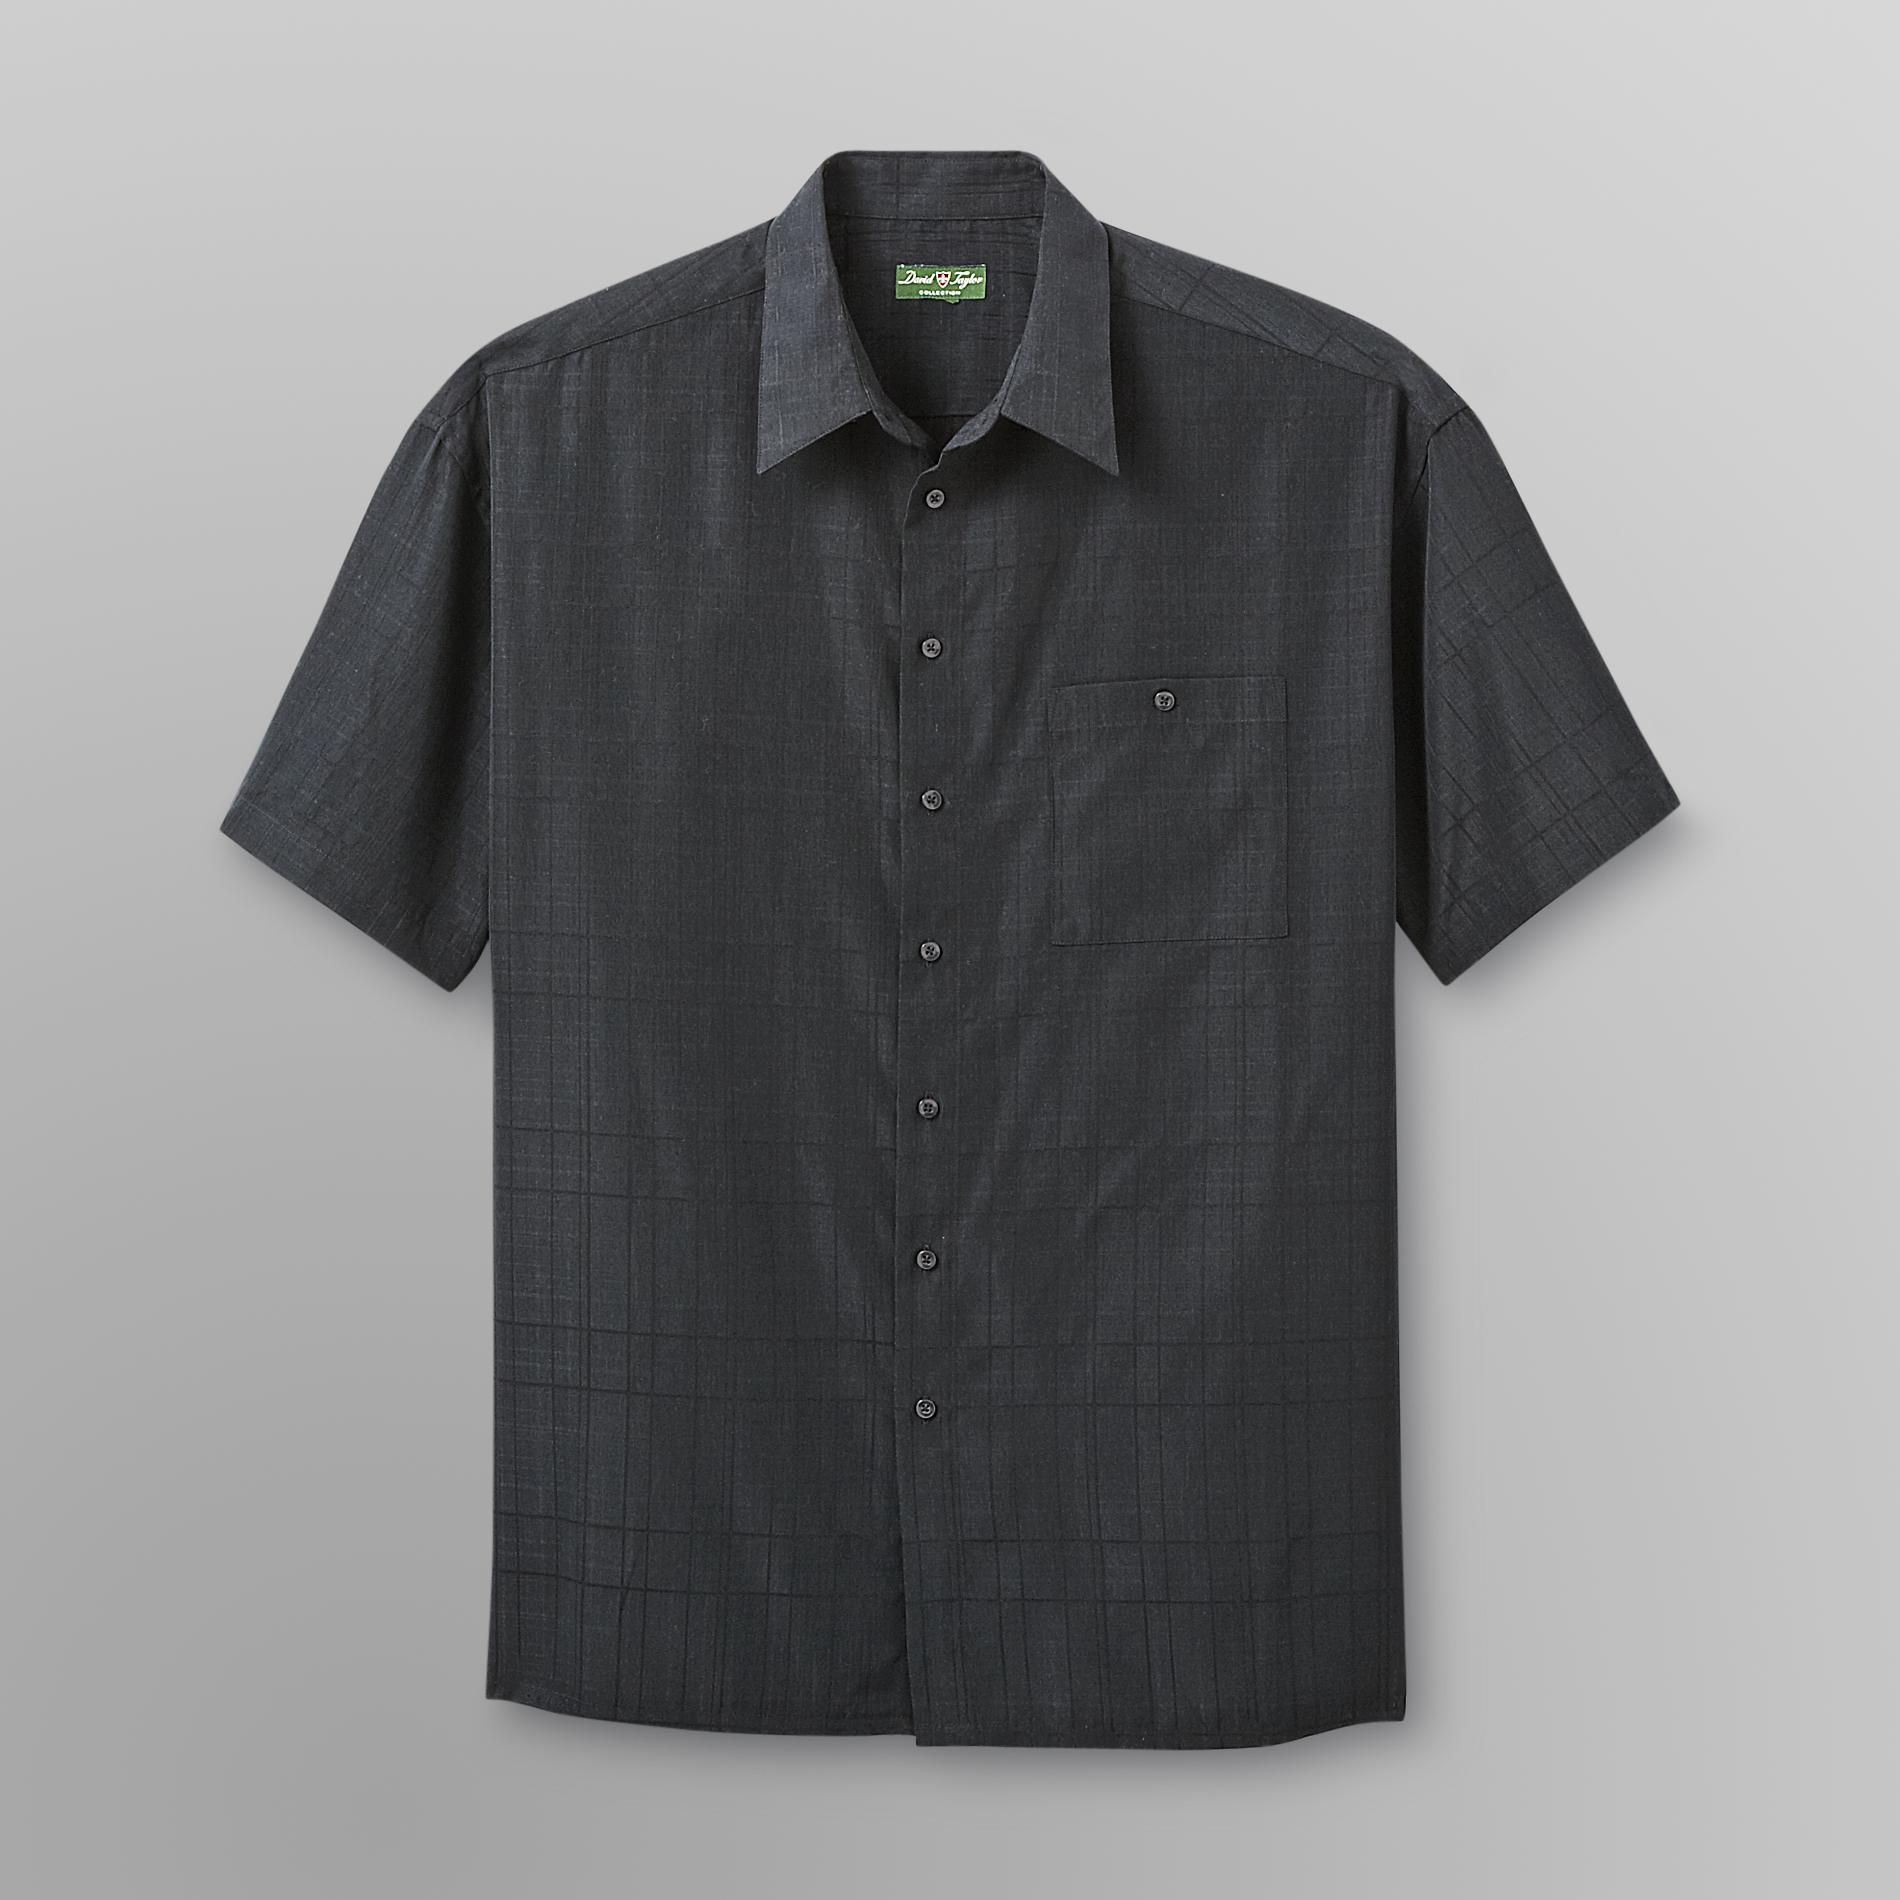 David Taylor Men's Big & Tall Shirt - Windowpane Plaid at Kmart.com